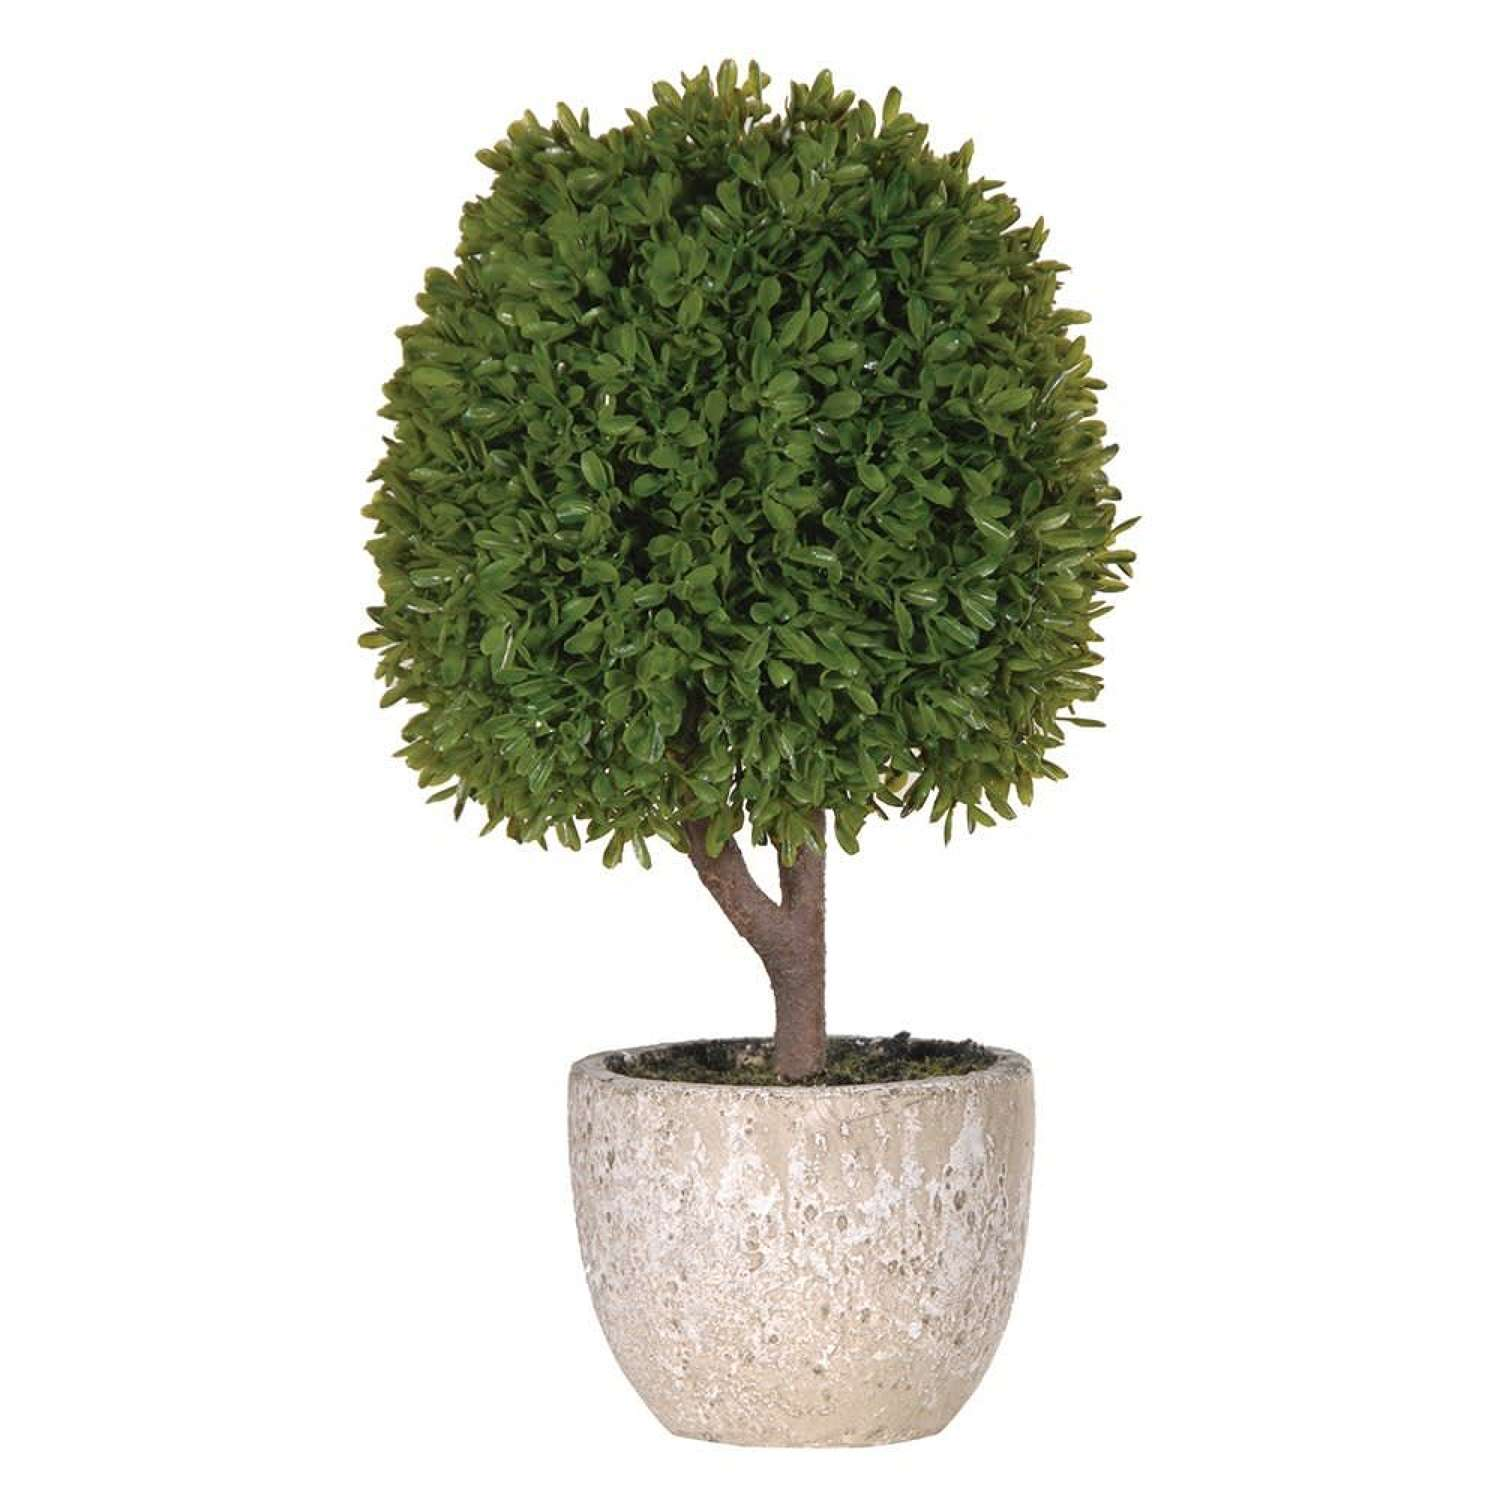 Miniature Boxwood Ball in Stone Effect Pot